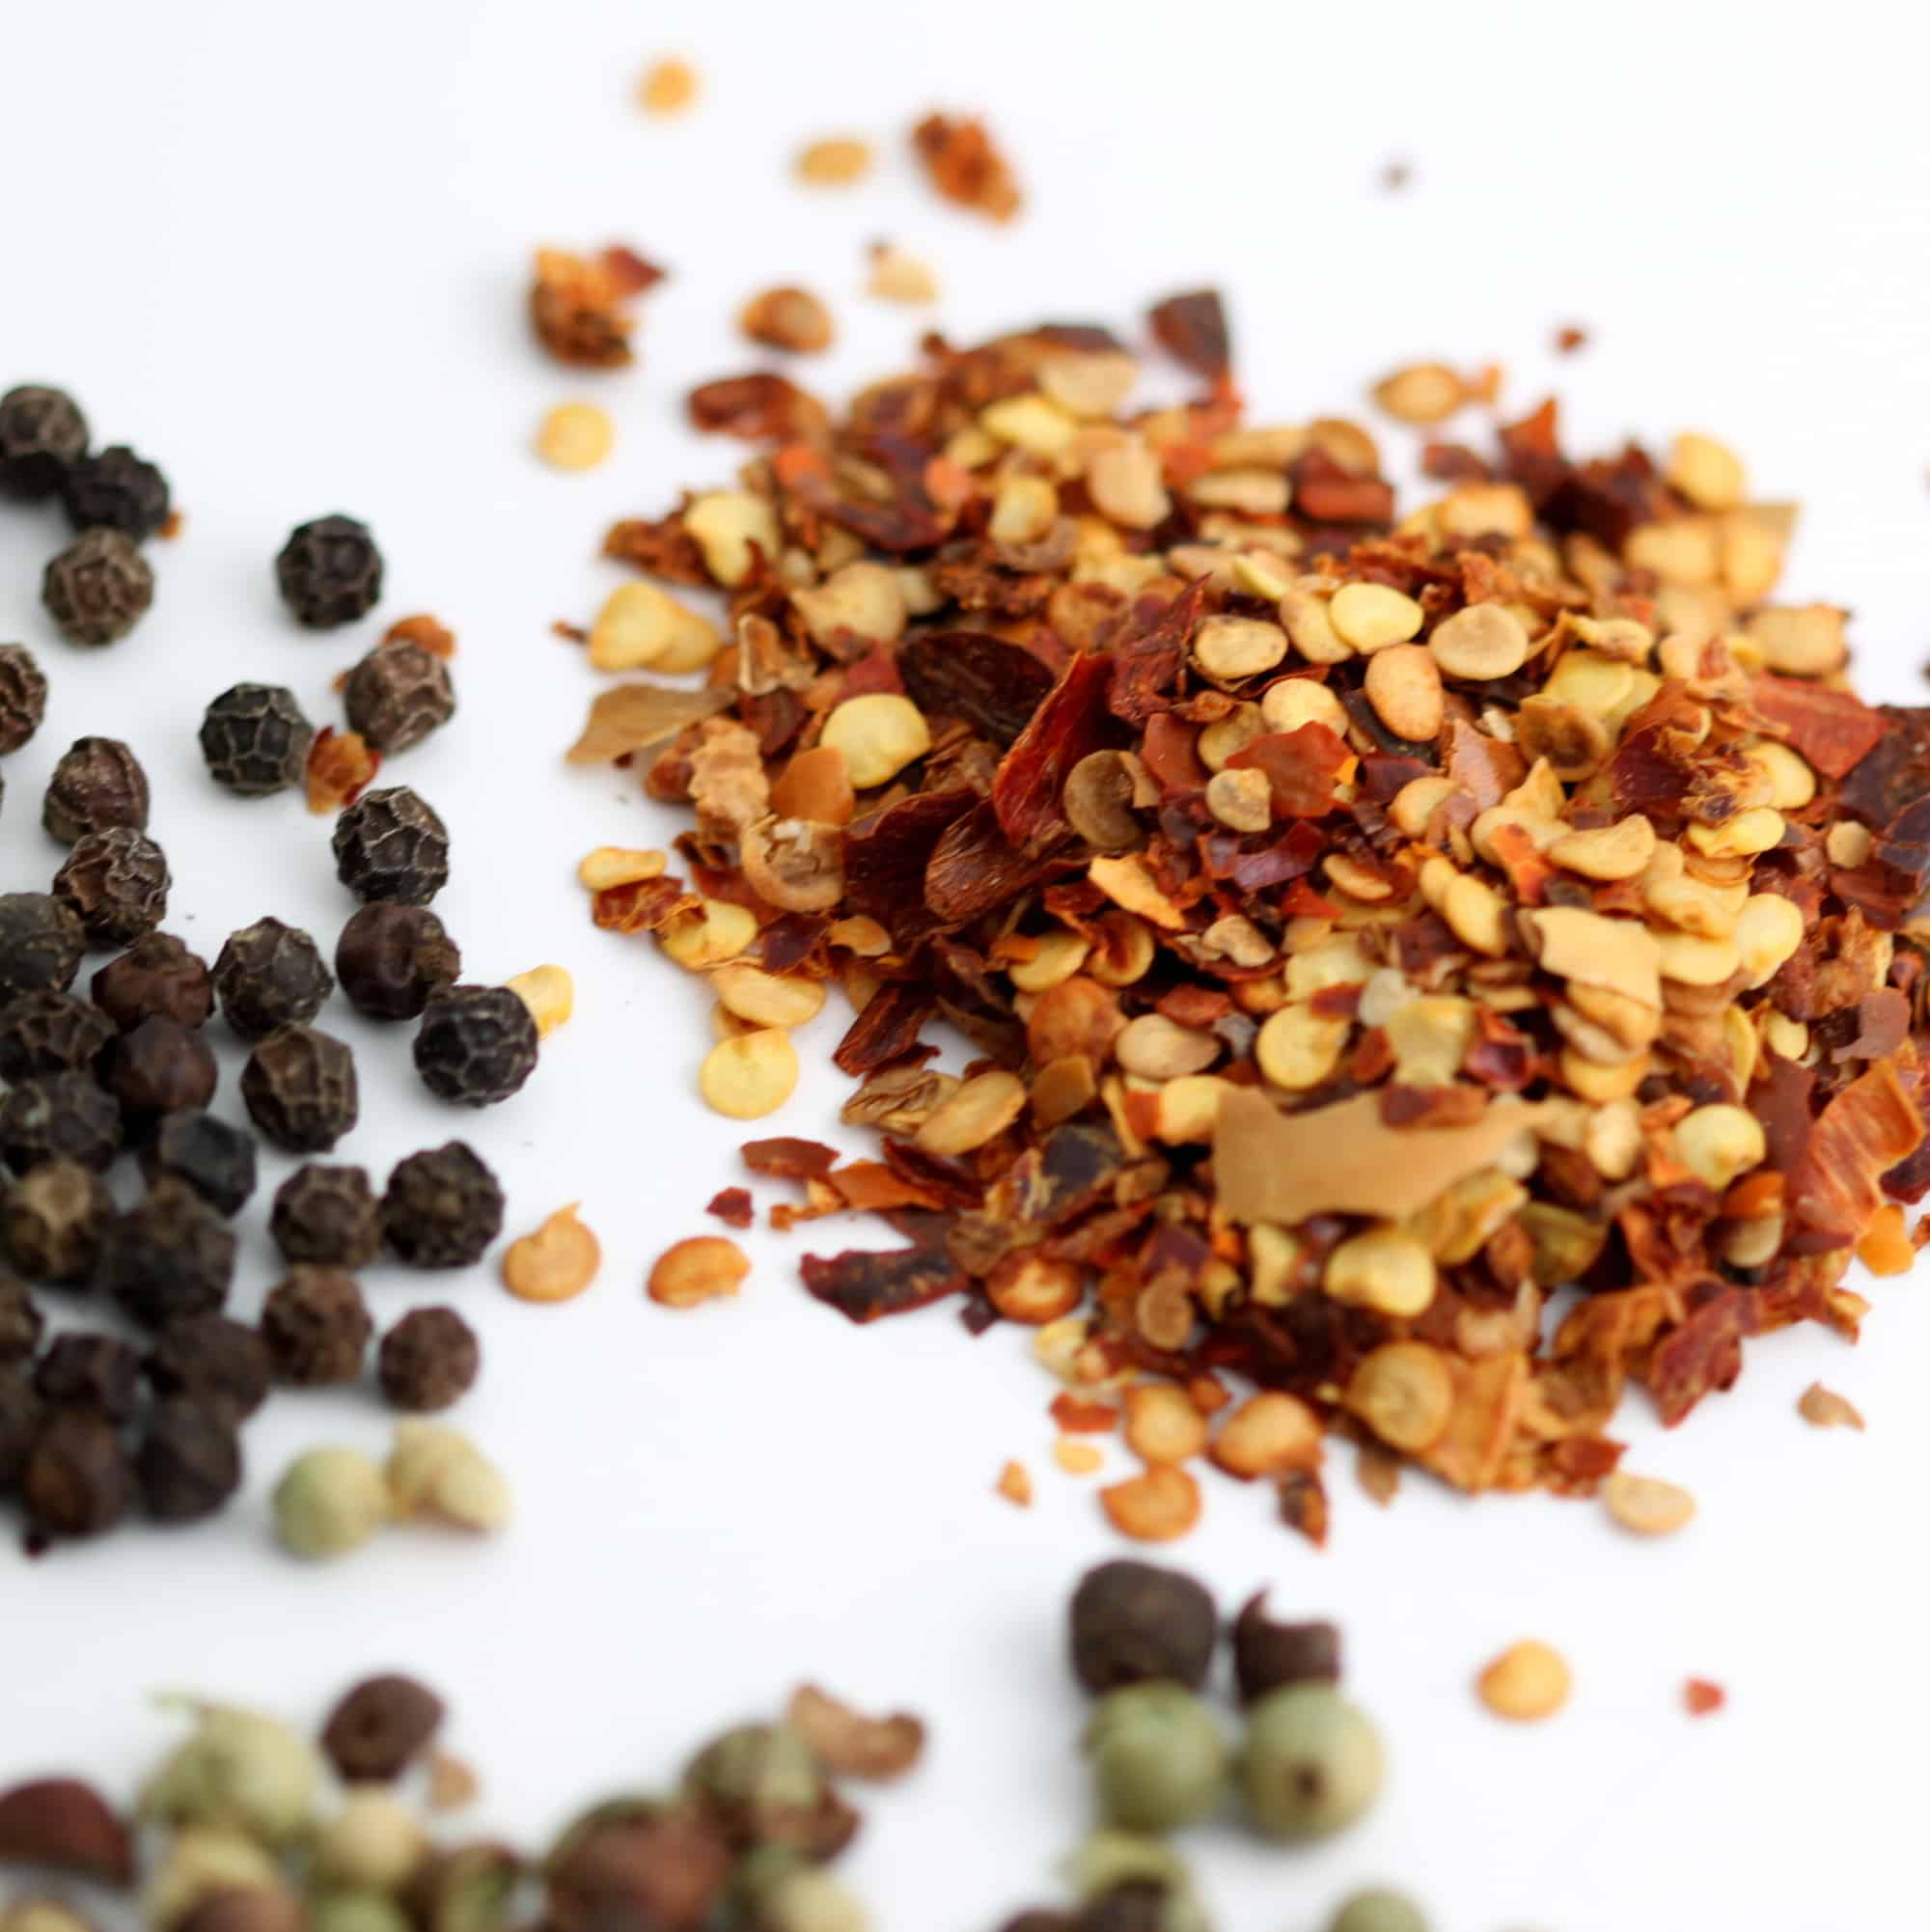 Black pepper vs. red pepper